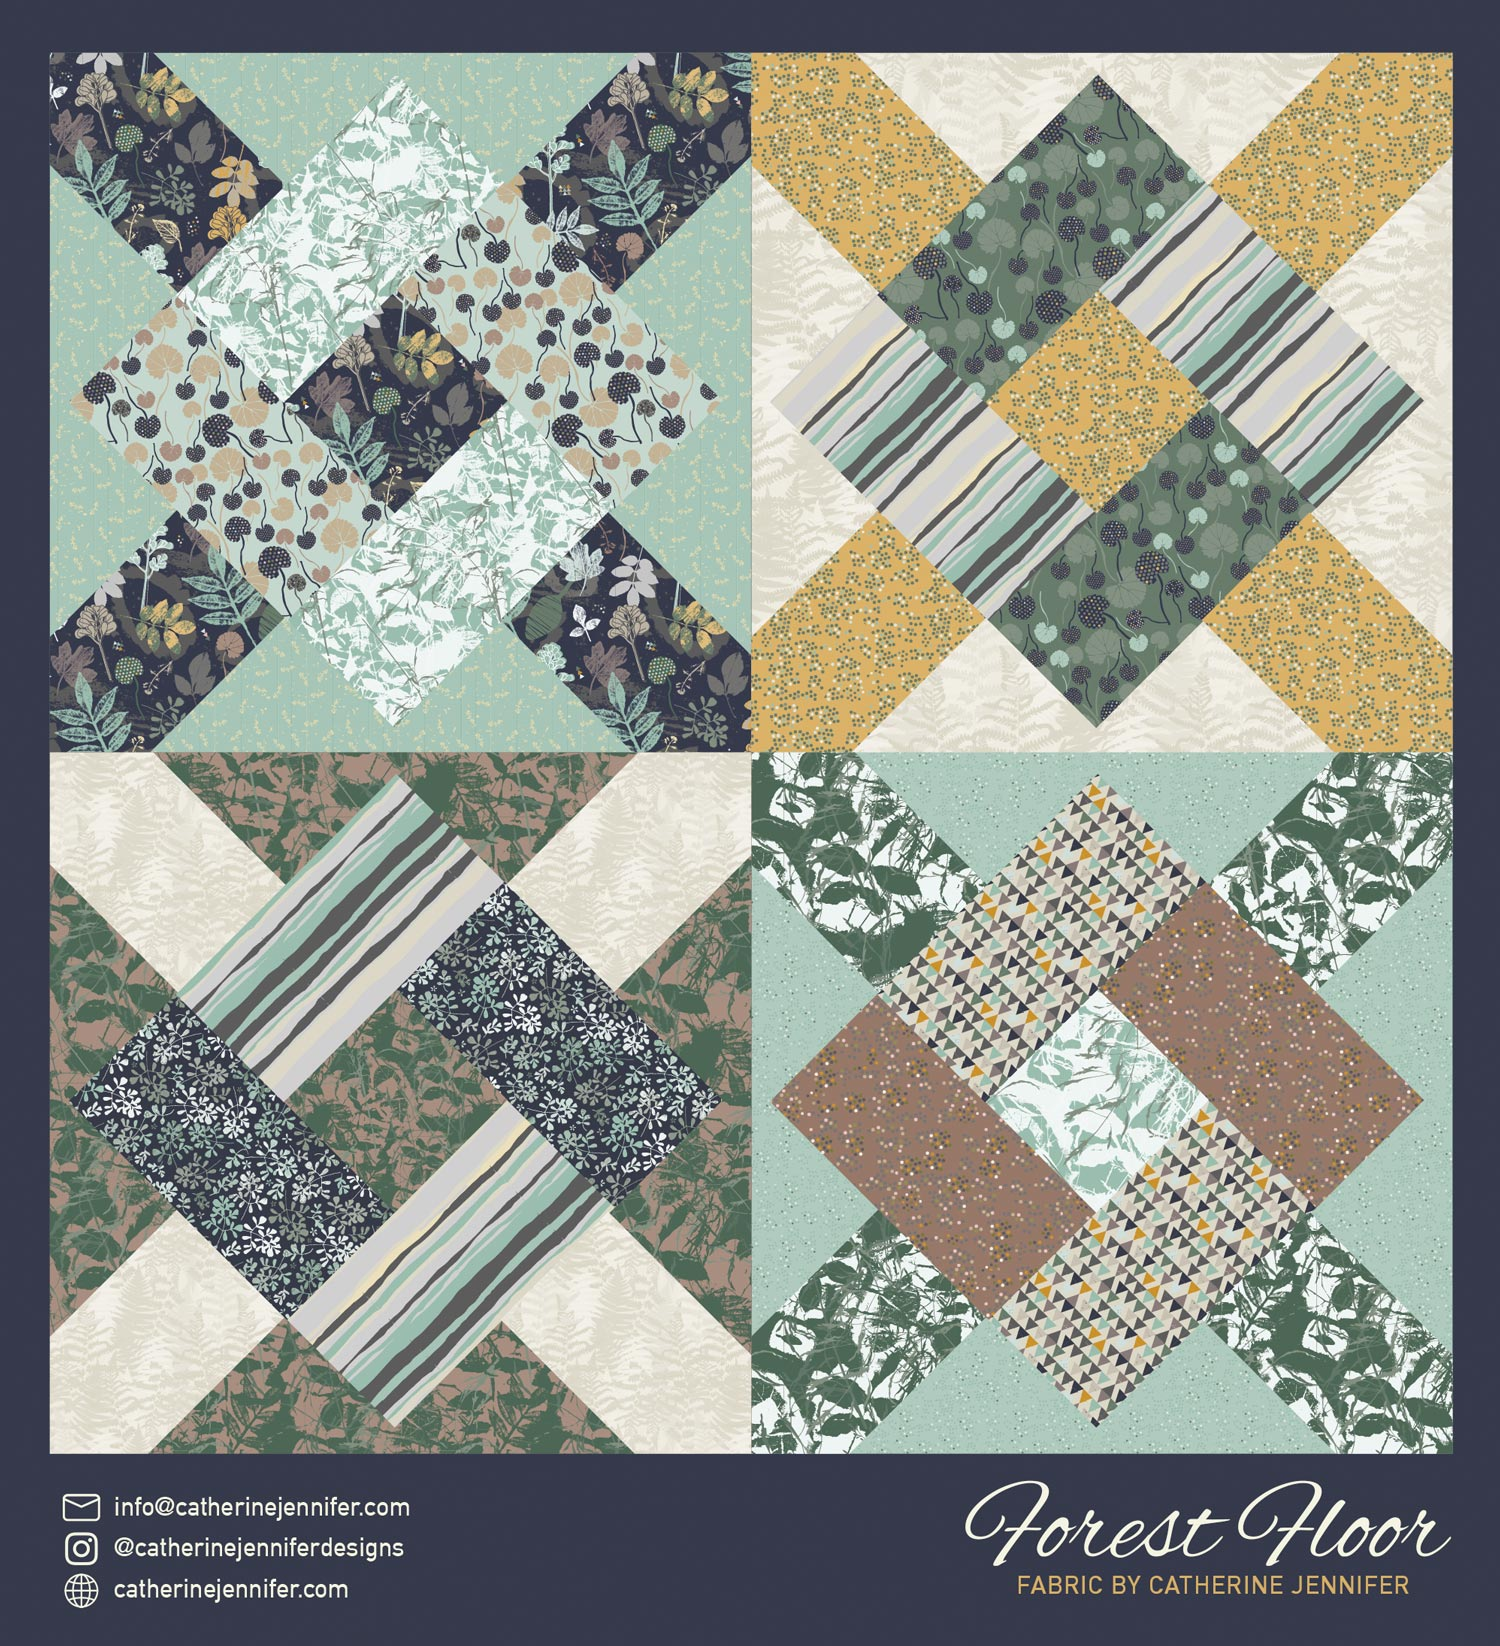 6_CATHERINE-JENNIFER-FOREST-FLOOR-COLLECTION-QUILT.jpg